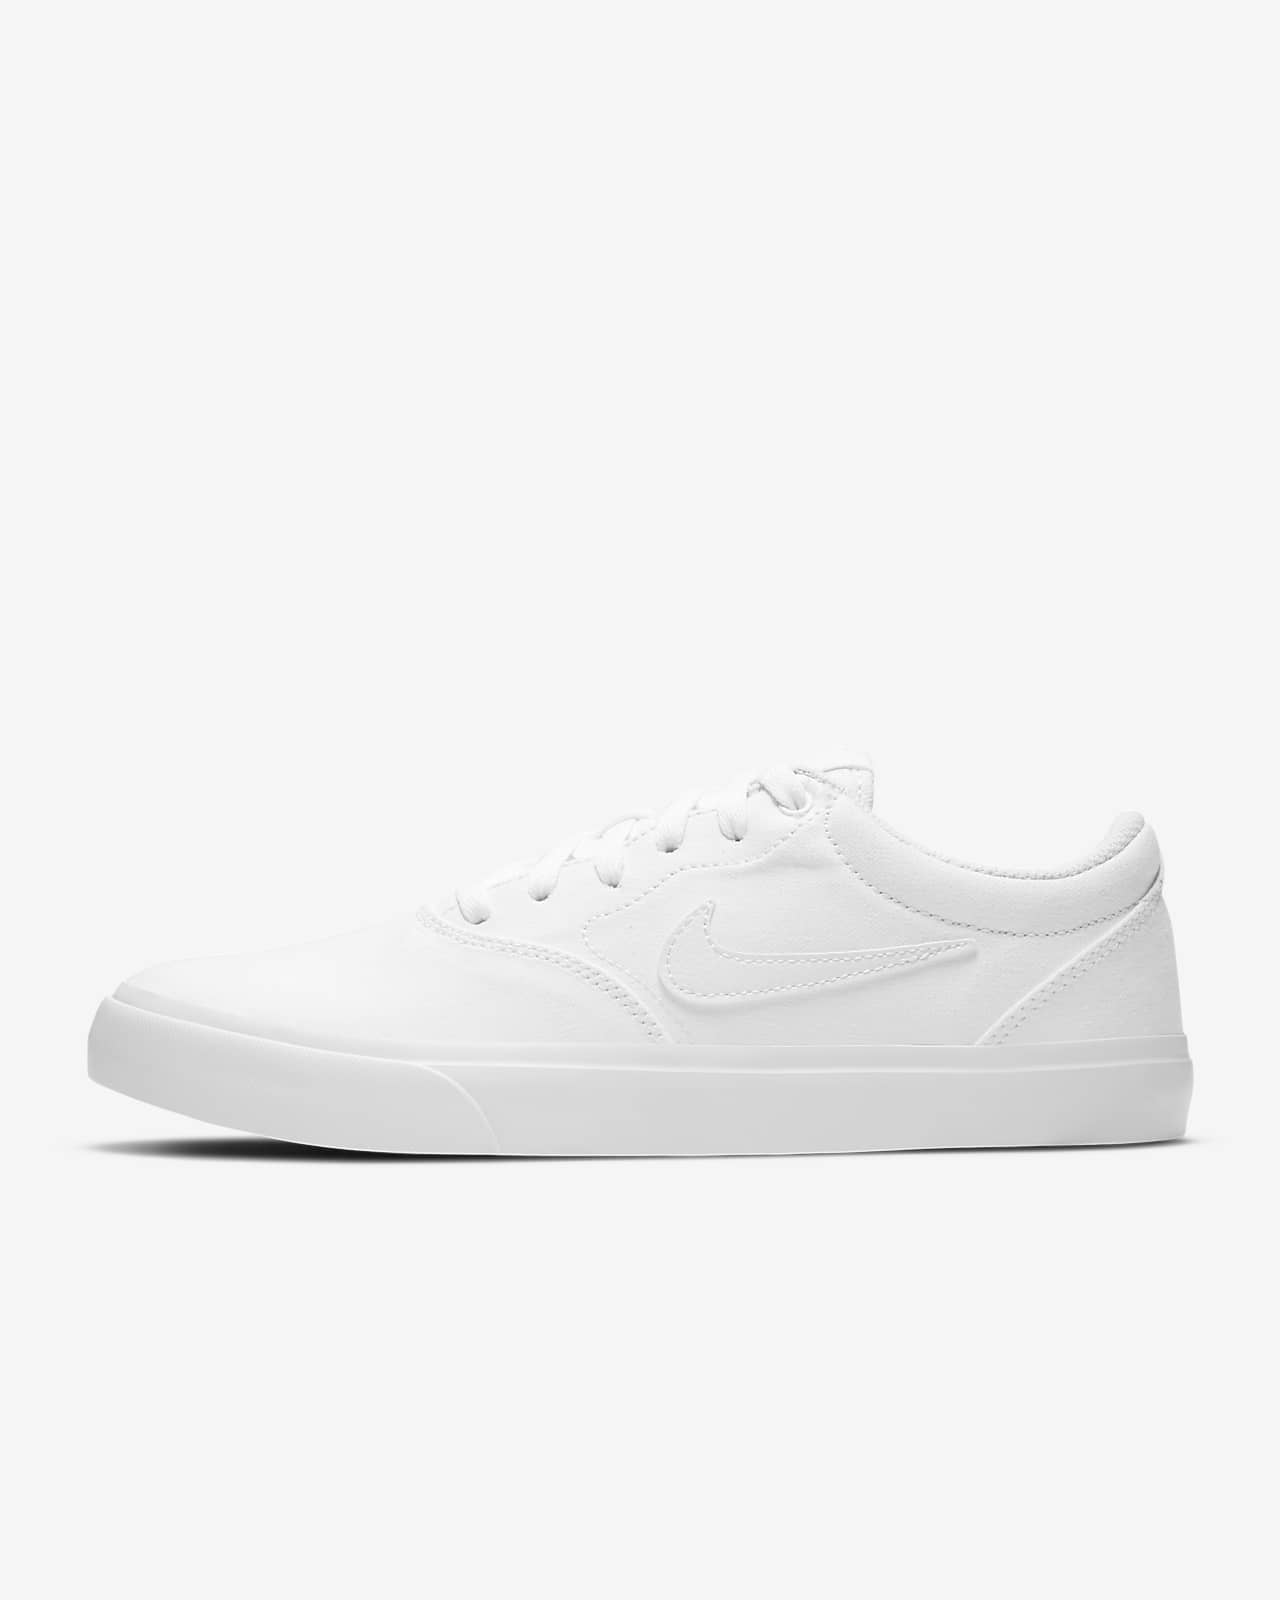 Skateboardsko Nike SB Charge Canvas